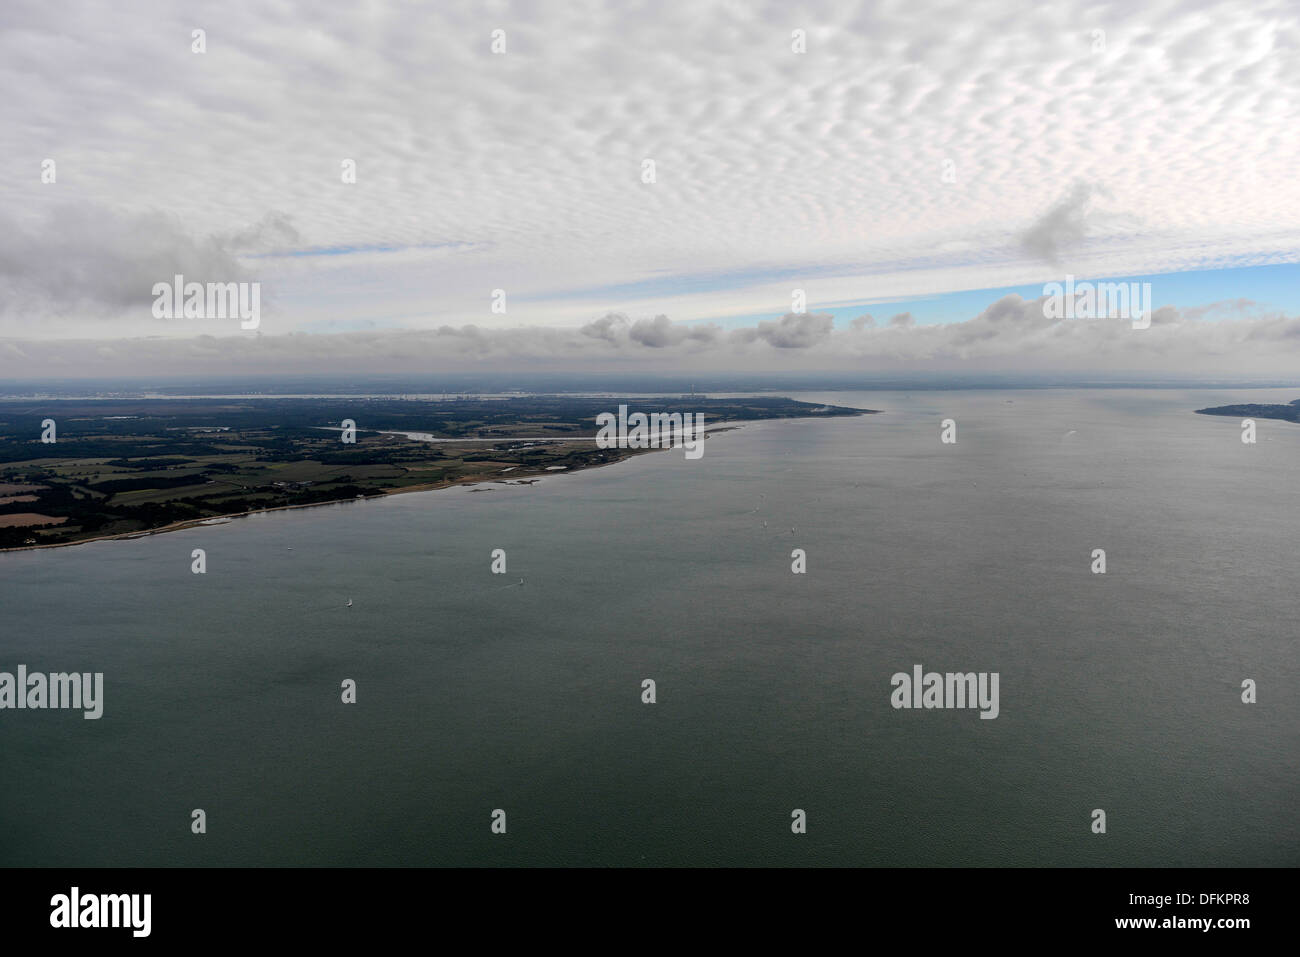 Aerial photograph of The Solent - Stock Image